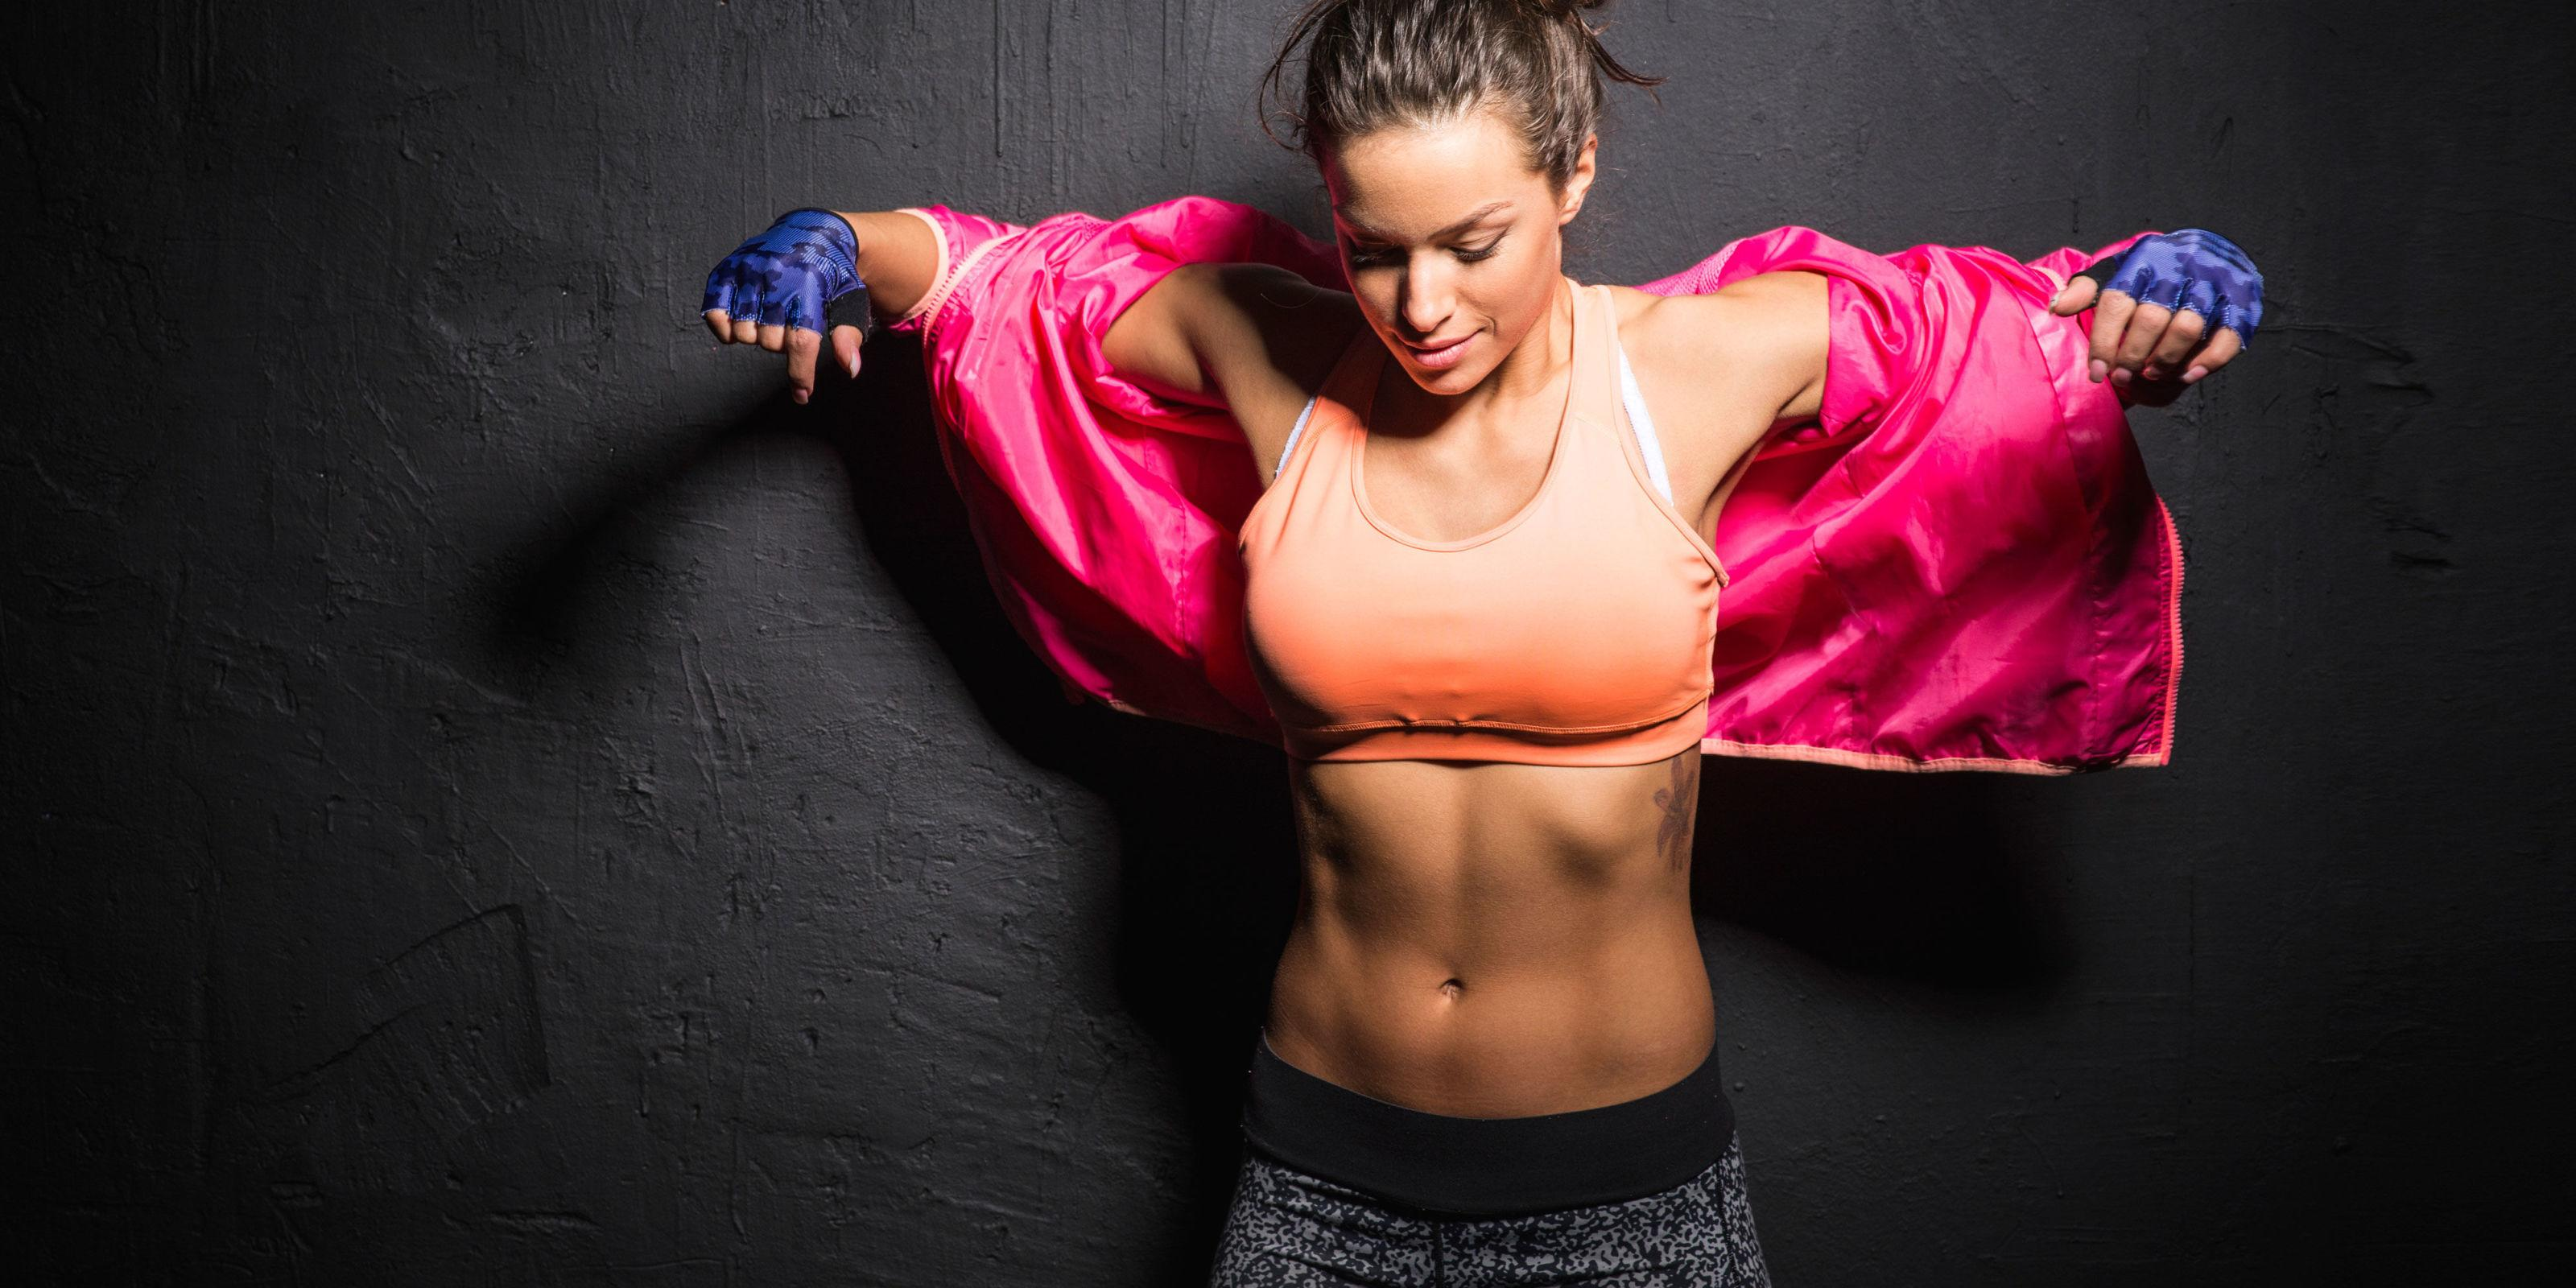 6 Easy Ab Exercises for a Flatter Stomach